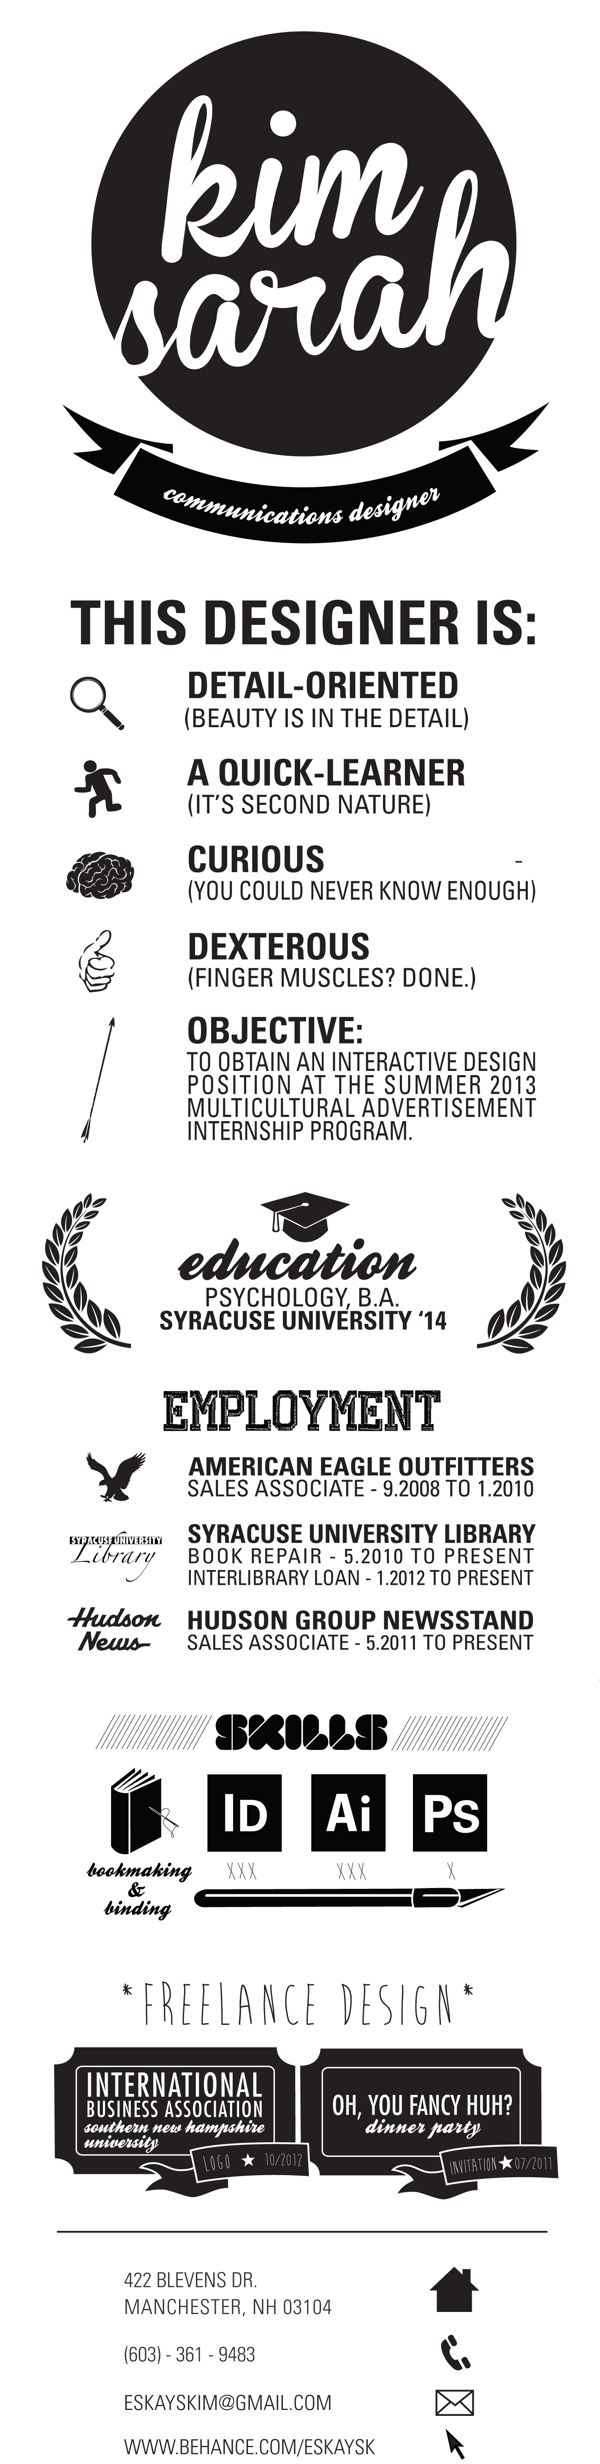 Picnictoimpeachus  Picturesque  Ideas About Infographic Resume On Pinterest  My Portfolio  With Inspiring  Ideas About Infographic Resume On Pinterest  My Portfolio Resume And Resume Design With Adorable Simple Resume Template Also How To Make A Good Resume In Addition Objective On A Resume And Resume Objective Example As Well As Resume Writer Additionally Resume Template Download From Pinterestcom With Picnictoimpeachus  Inspiring  Ideas About Infographic Resume On Pinterest  My Portfolio  With Adorable  Ideas About Infographic Resume On Pinterest  My Portfolio Resume And Resume Design And Picturesque Simple Resume Template Also How To Make A Good Resume In Addition Objective On A Resume From Pinterestcom